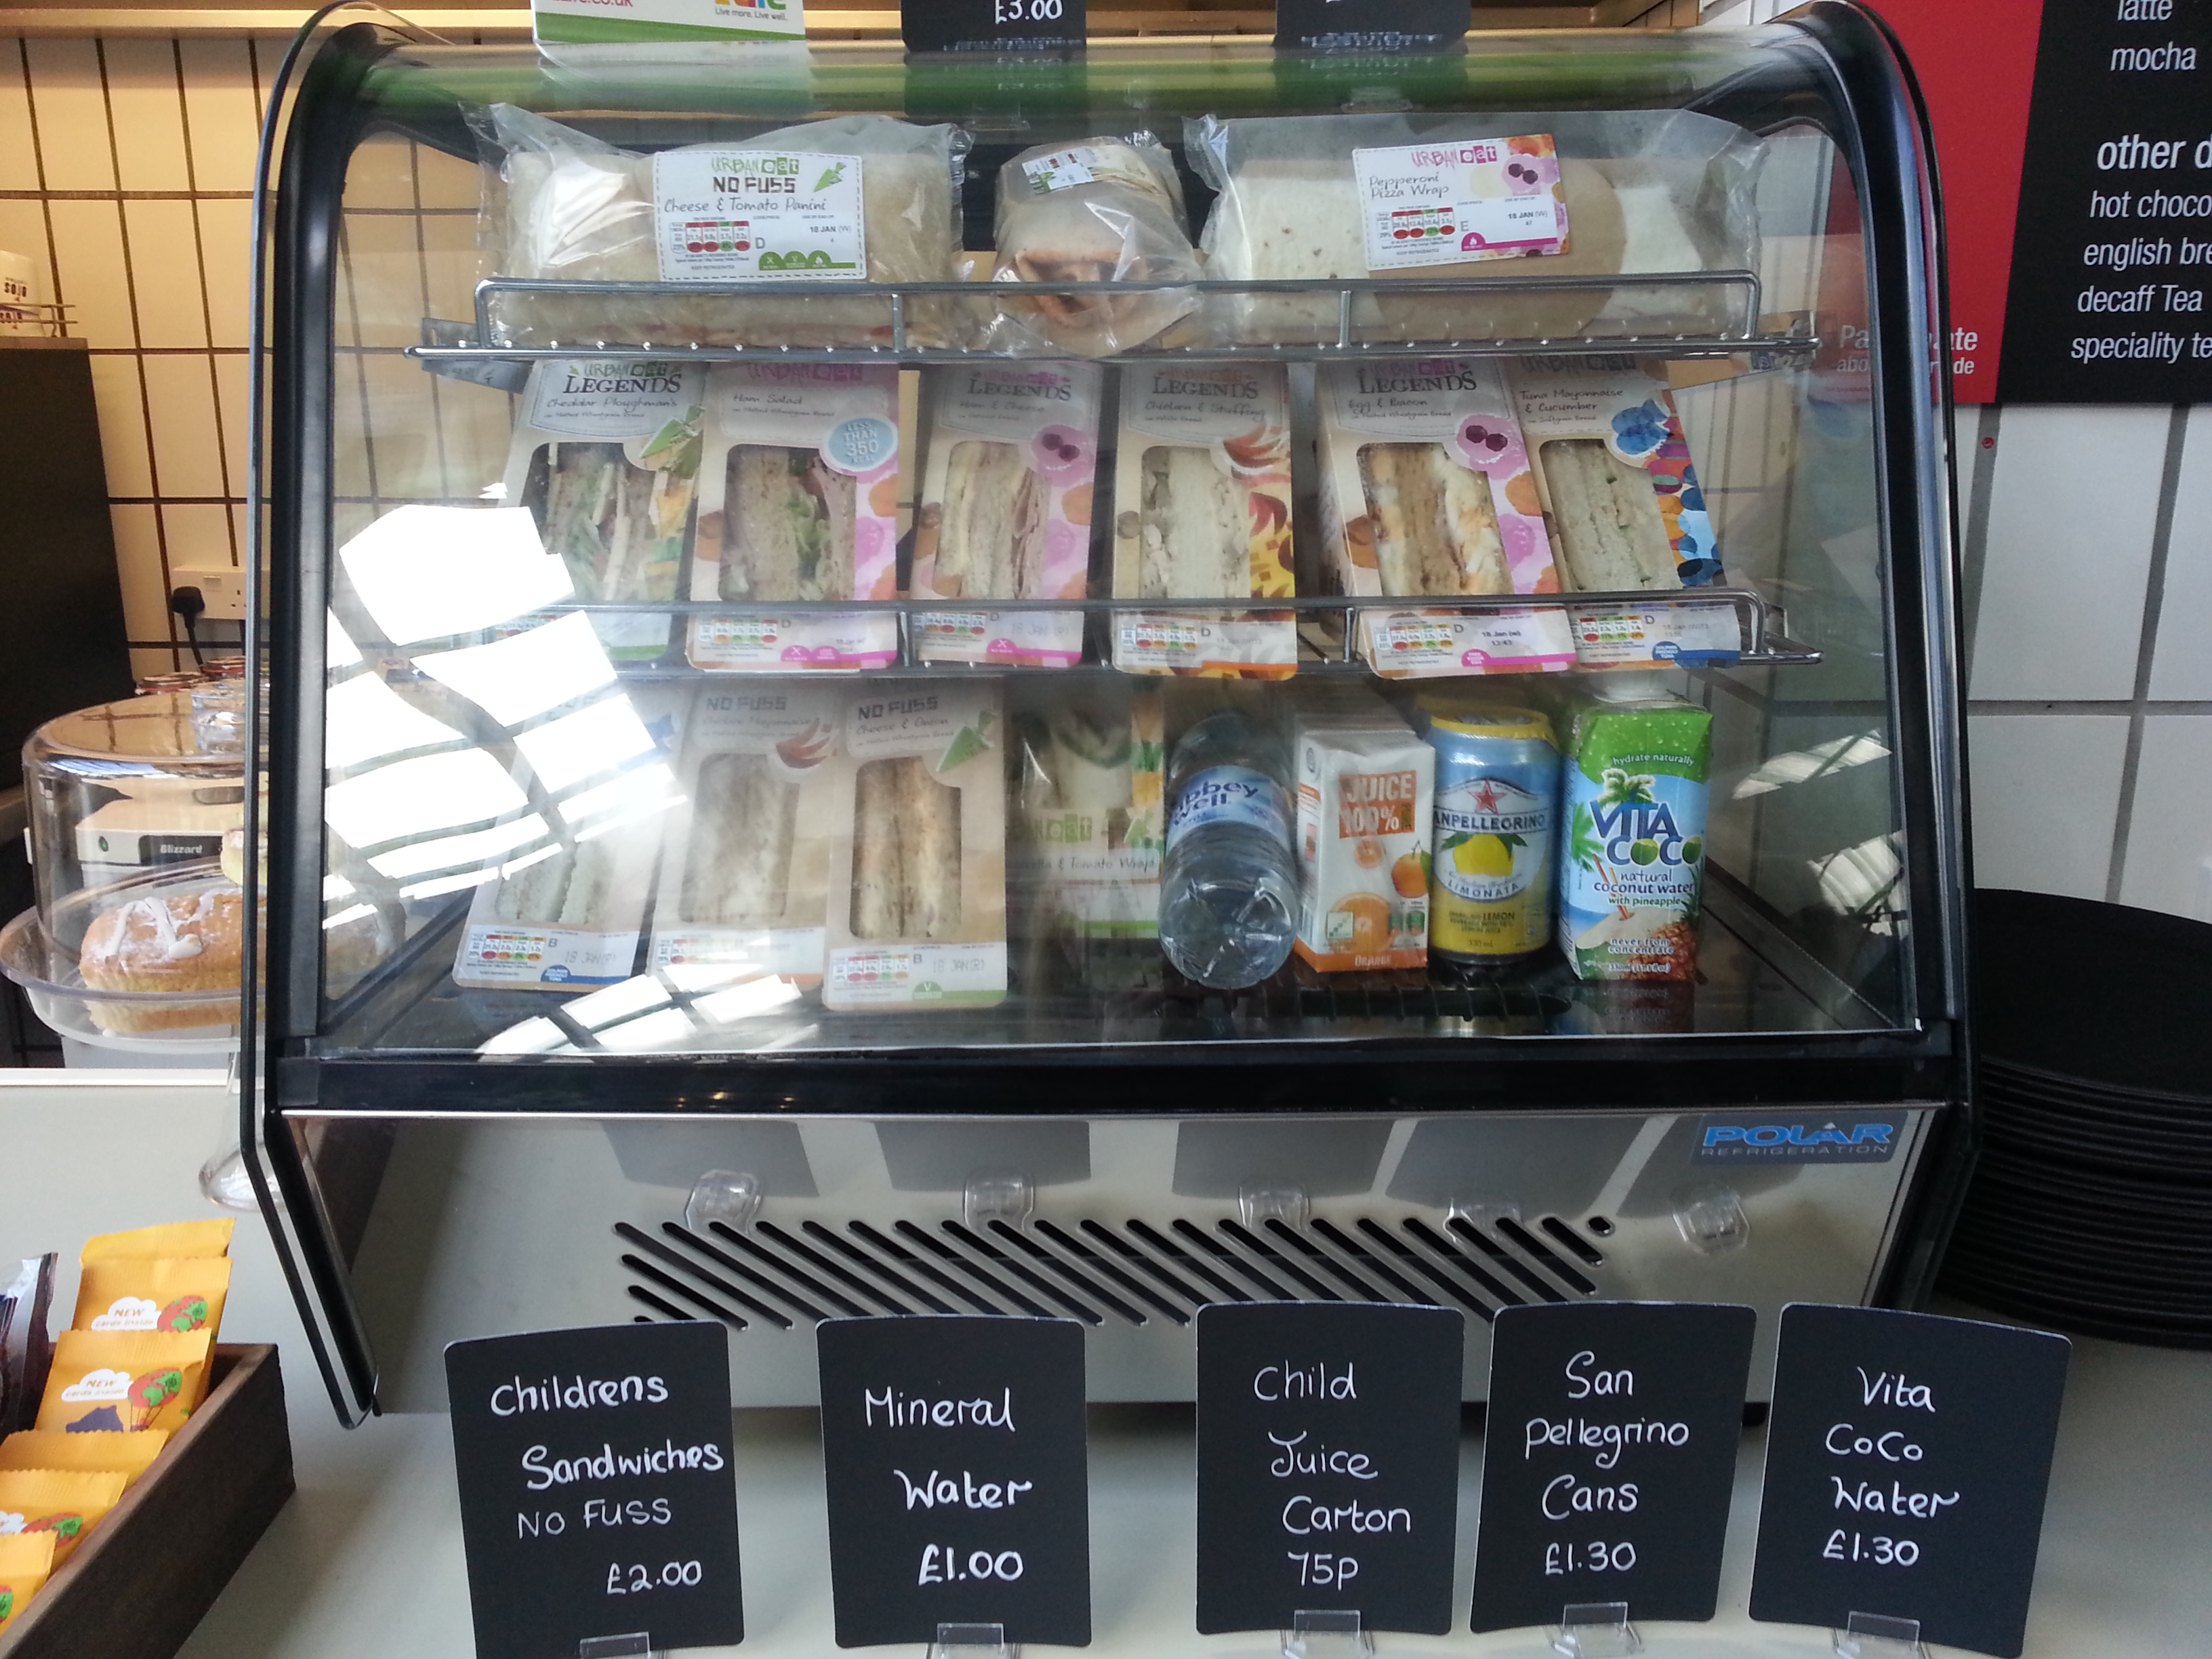 Parklands Leisure Centre has introduced a new food and drinks range following customer feedback